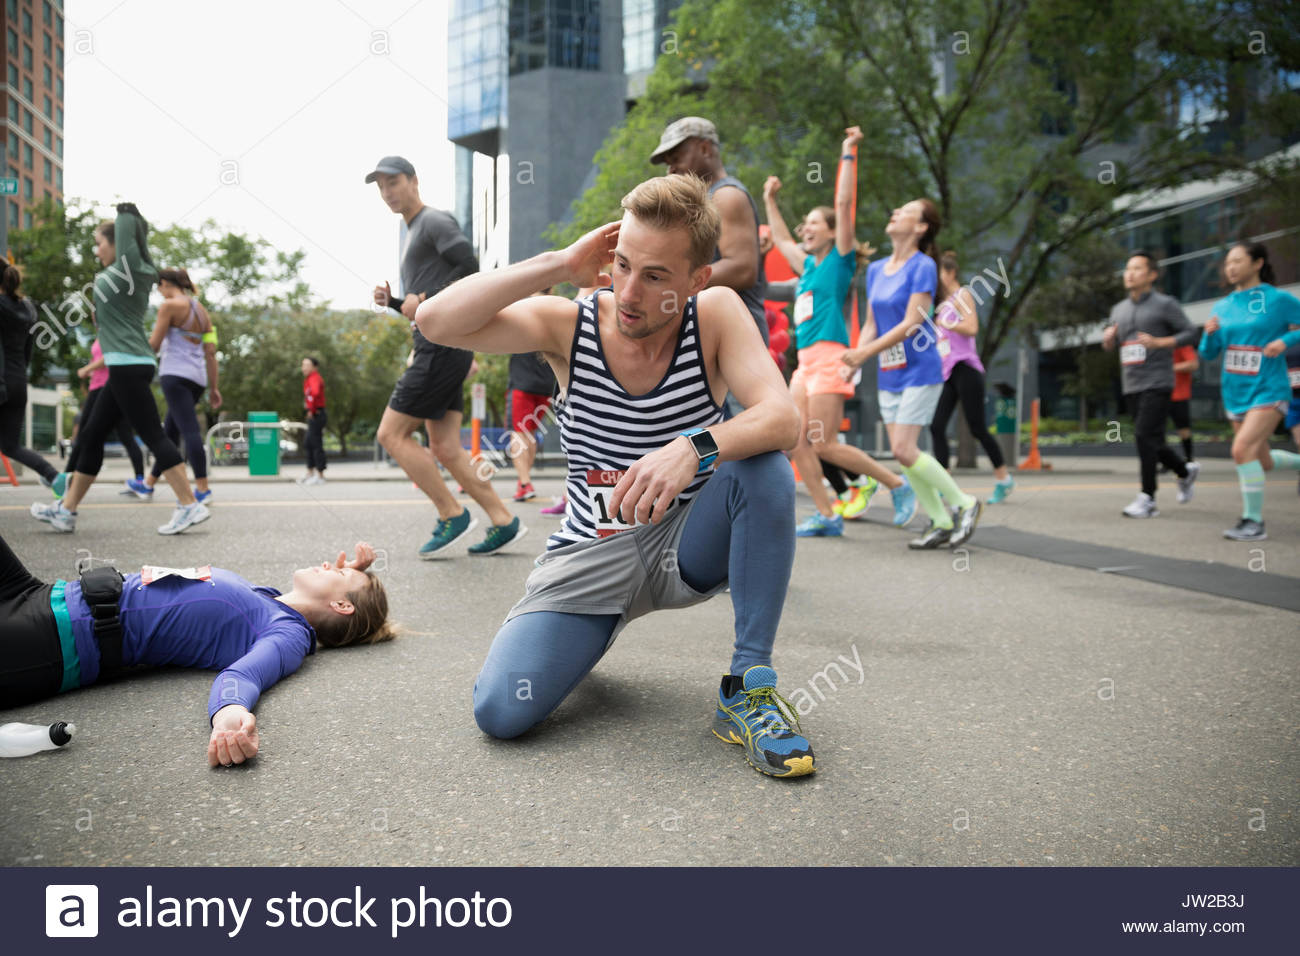 Exhausted marathon runners collapsing at finish line - Stock Image